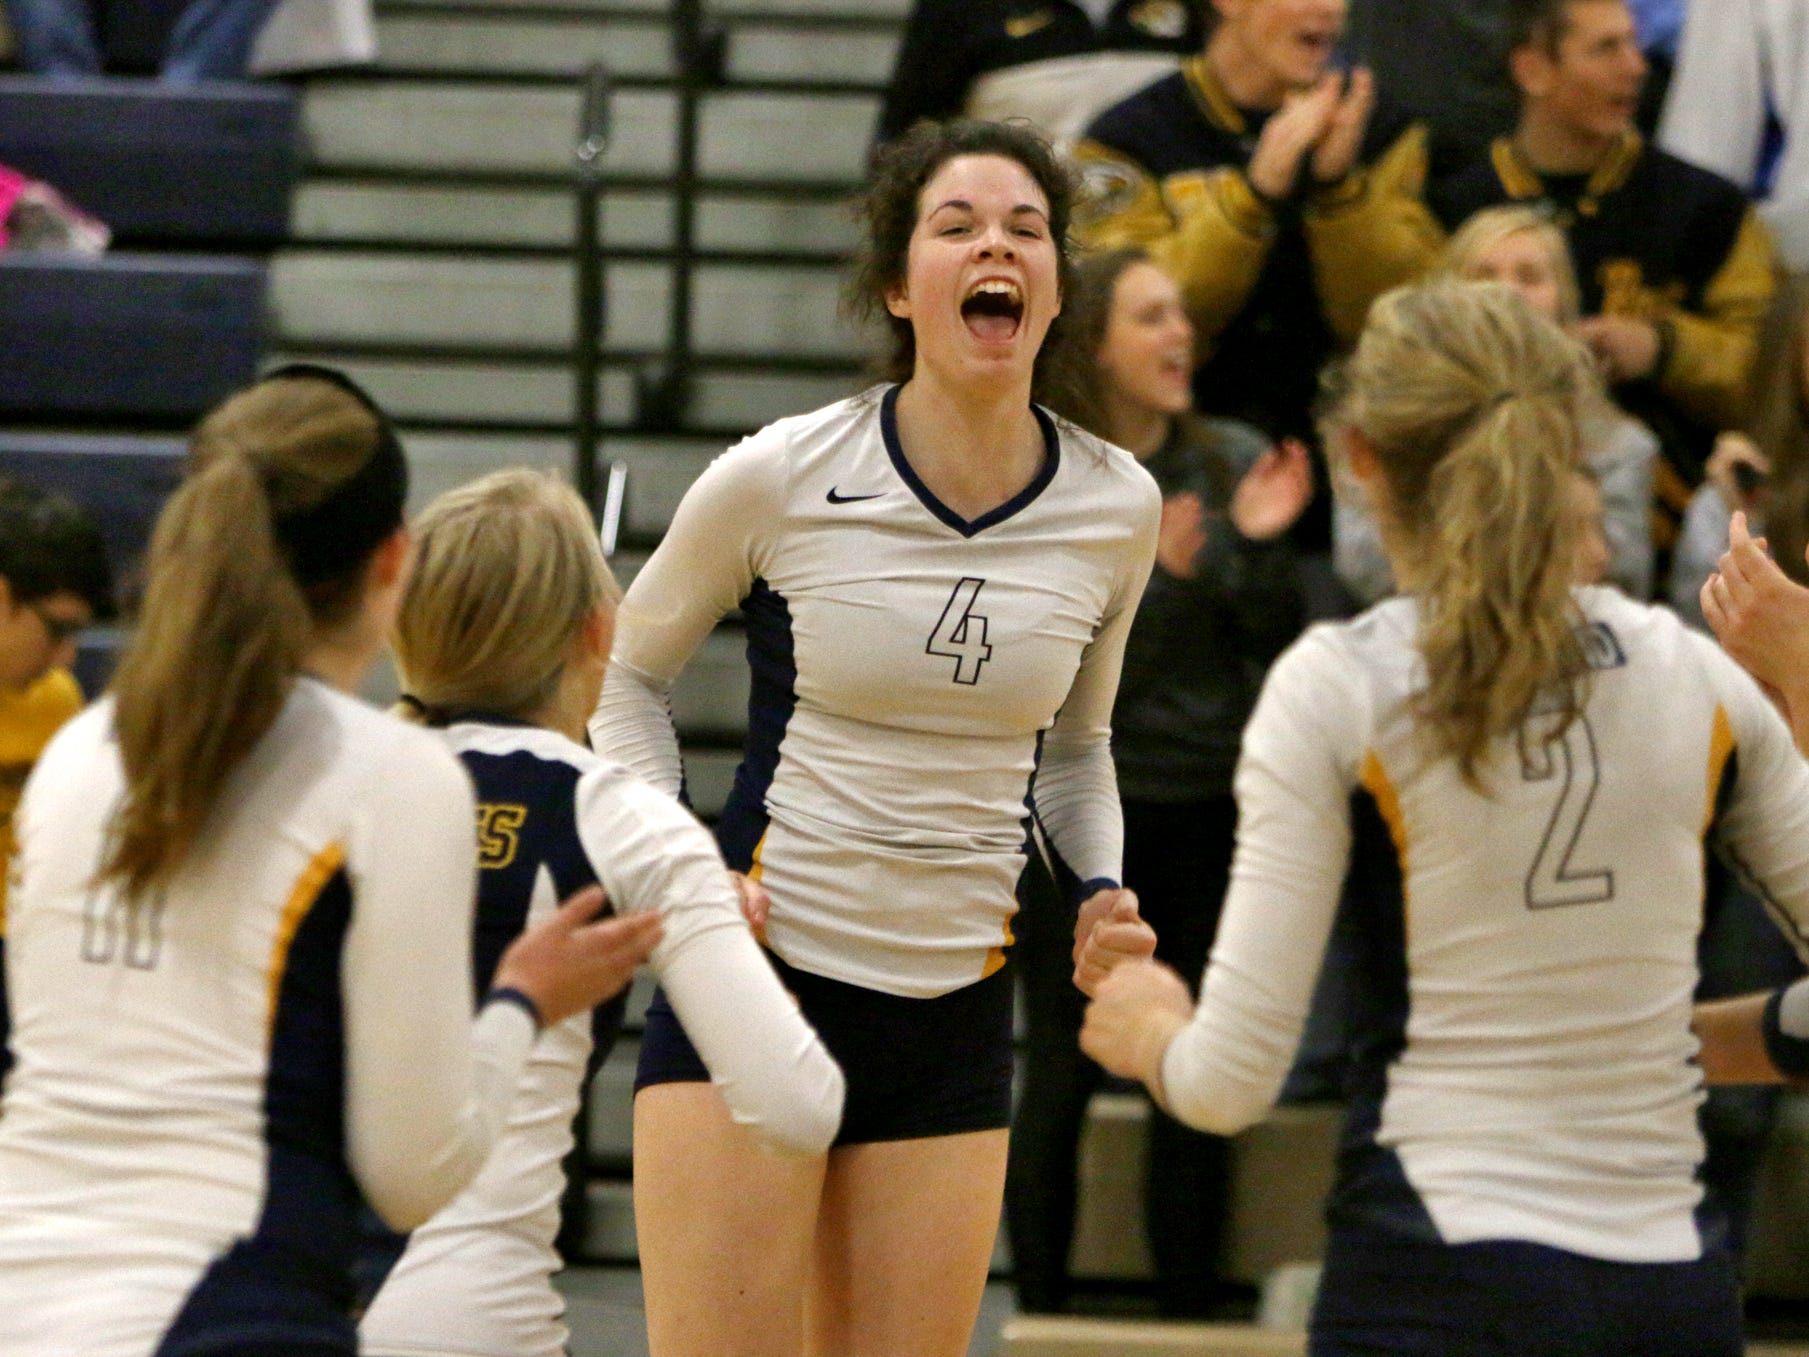 Sarah Skinner led Hartland's volleball team to a sweep of Brighton in a Class A district opener Monday night. The Eagles unseated their rivals in the Bulldogs, who entered as five-time defending district champions.